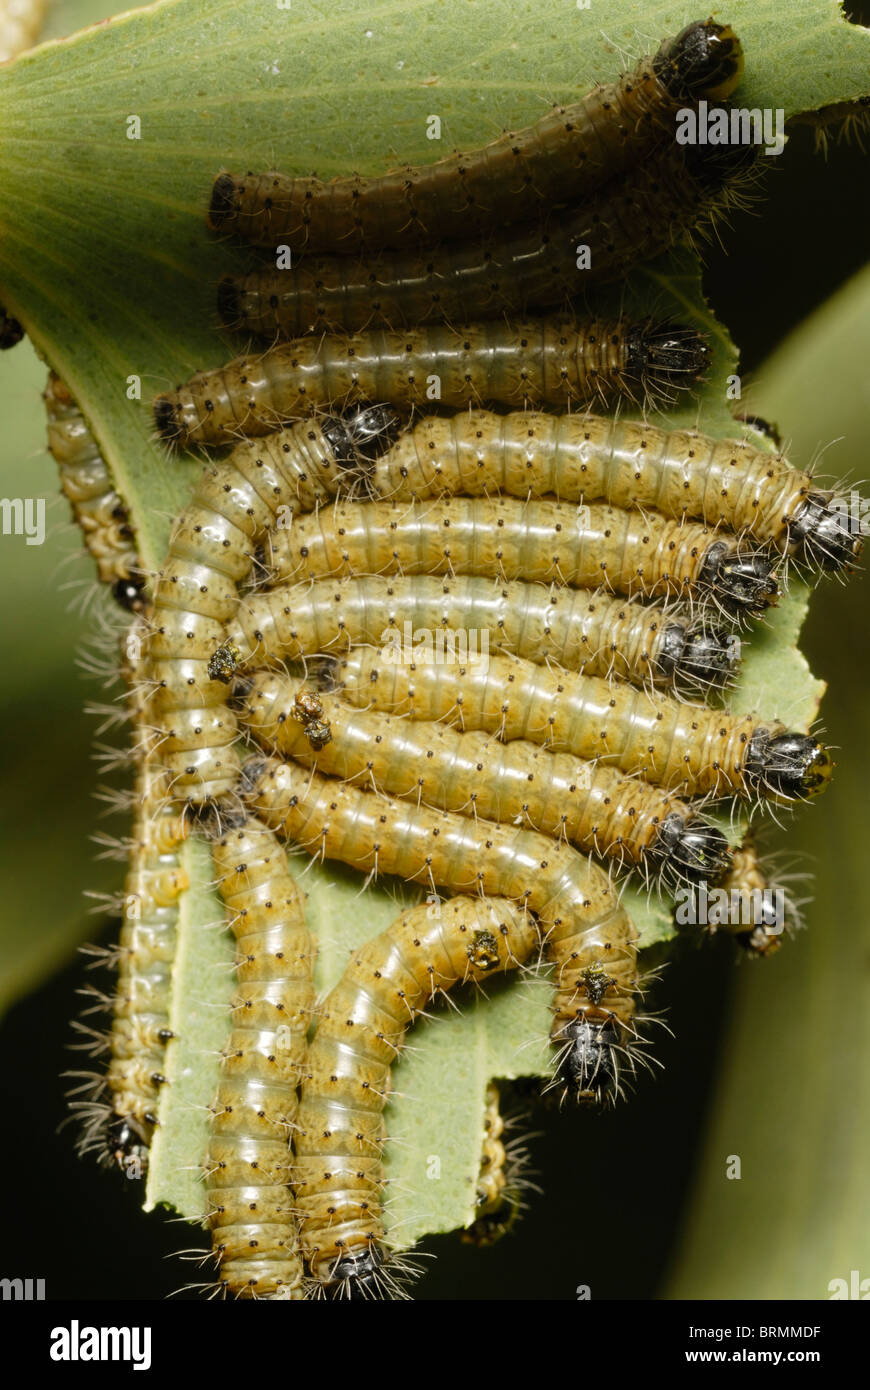 Young yellow Mopane worms feeding on a mopane leaf - Stock Image